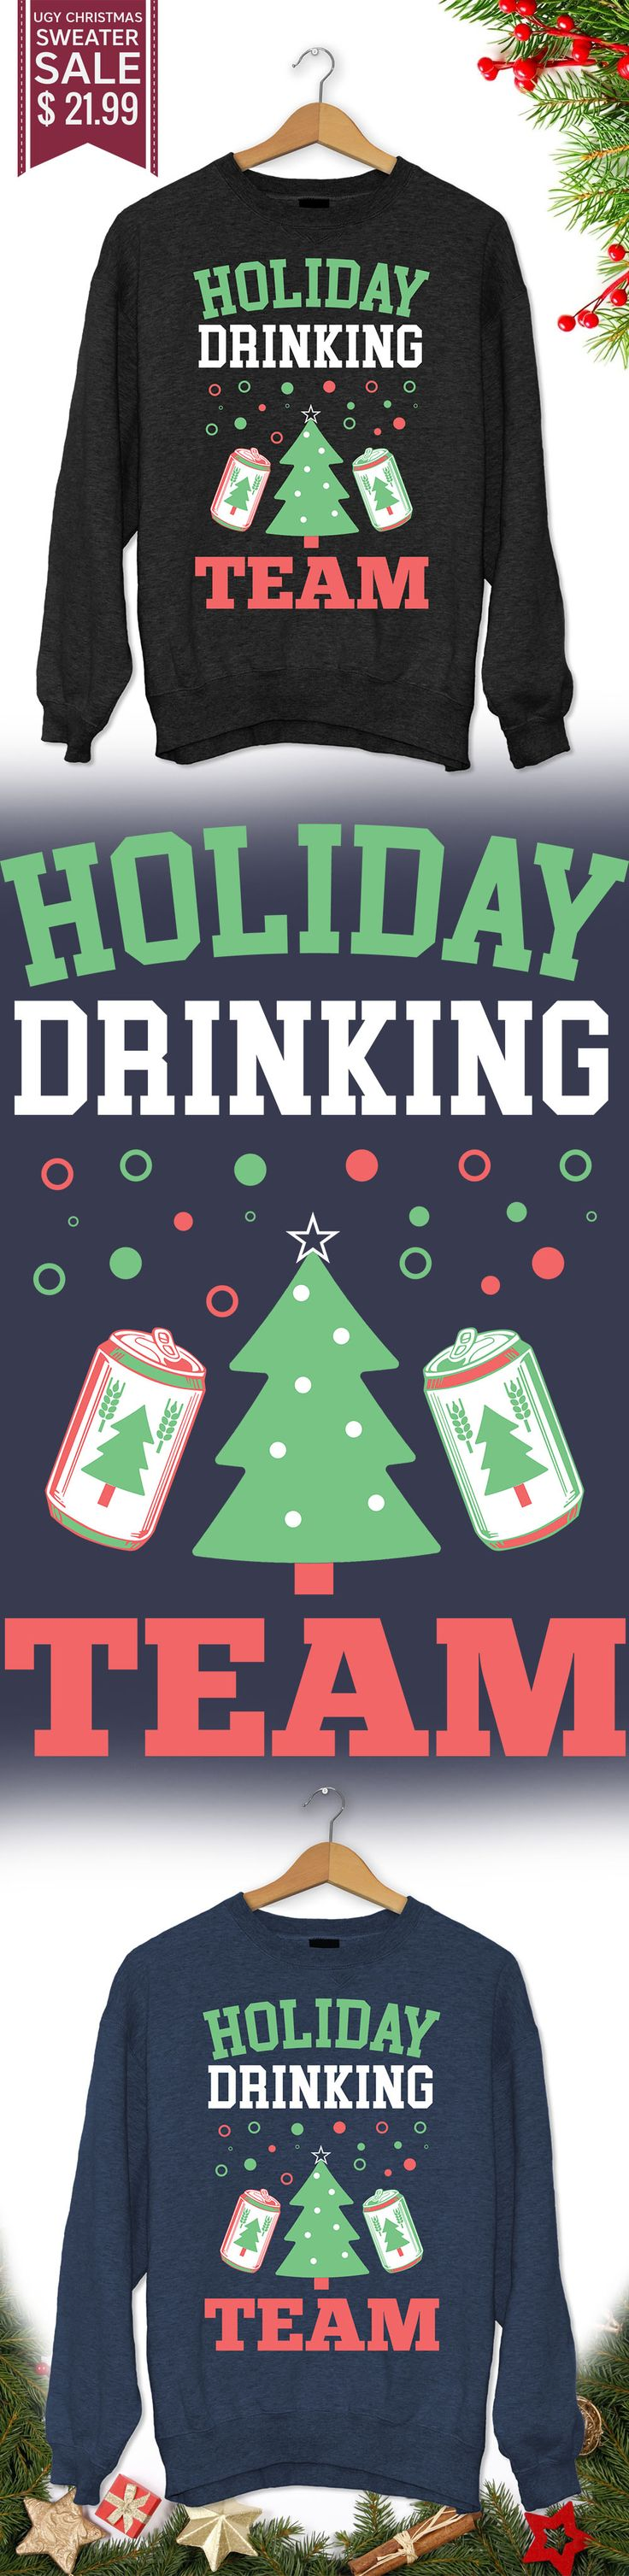 Christmas Drinking Team - Get this limited edition ugly Christmas Sweater just in time for the holidays! Buy 2 or more, save on shipping!